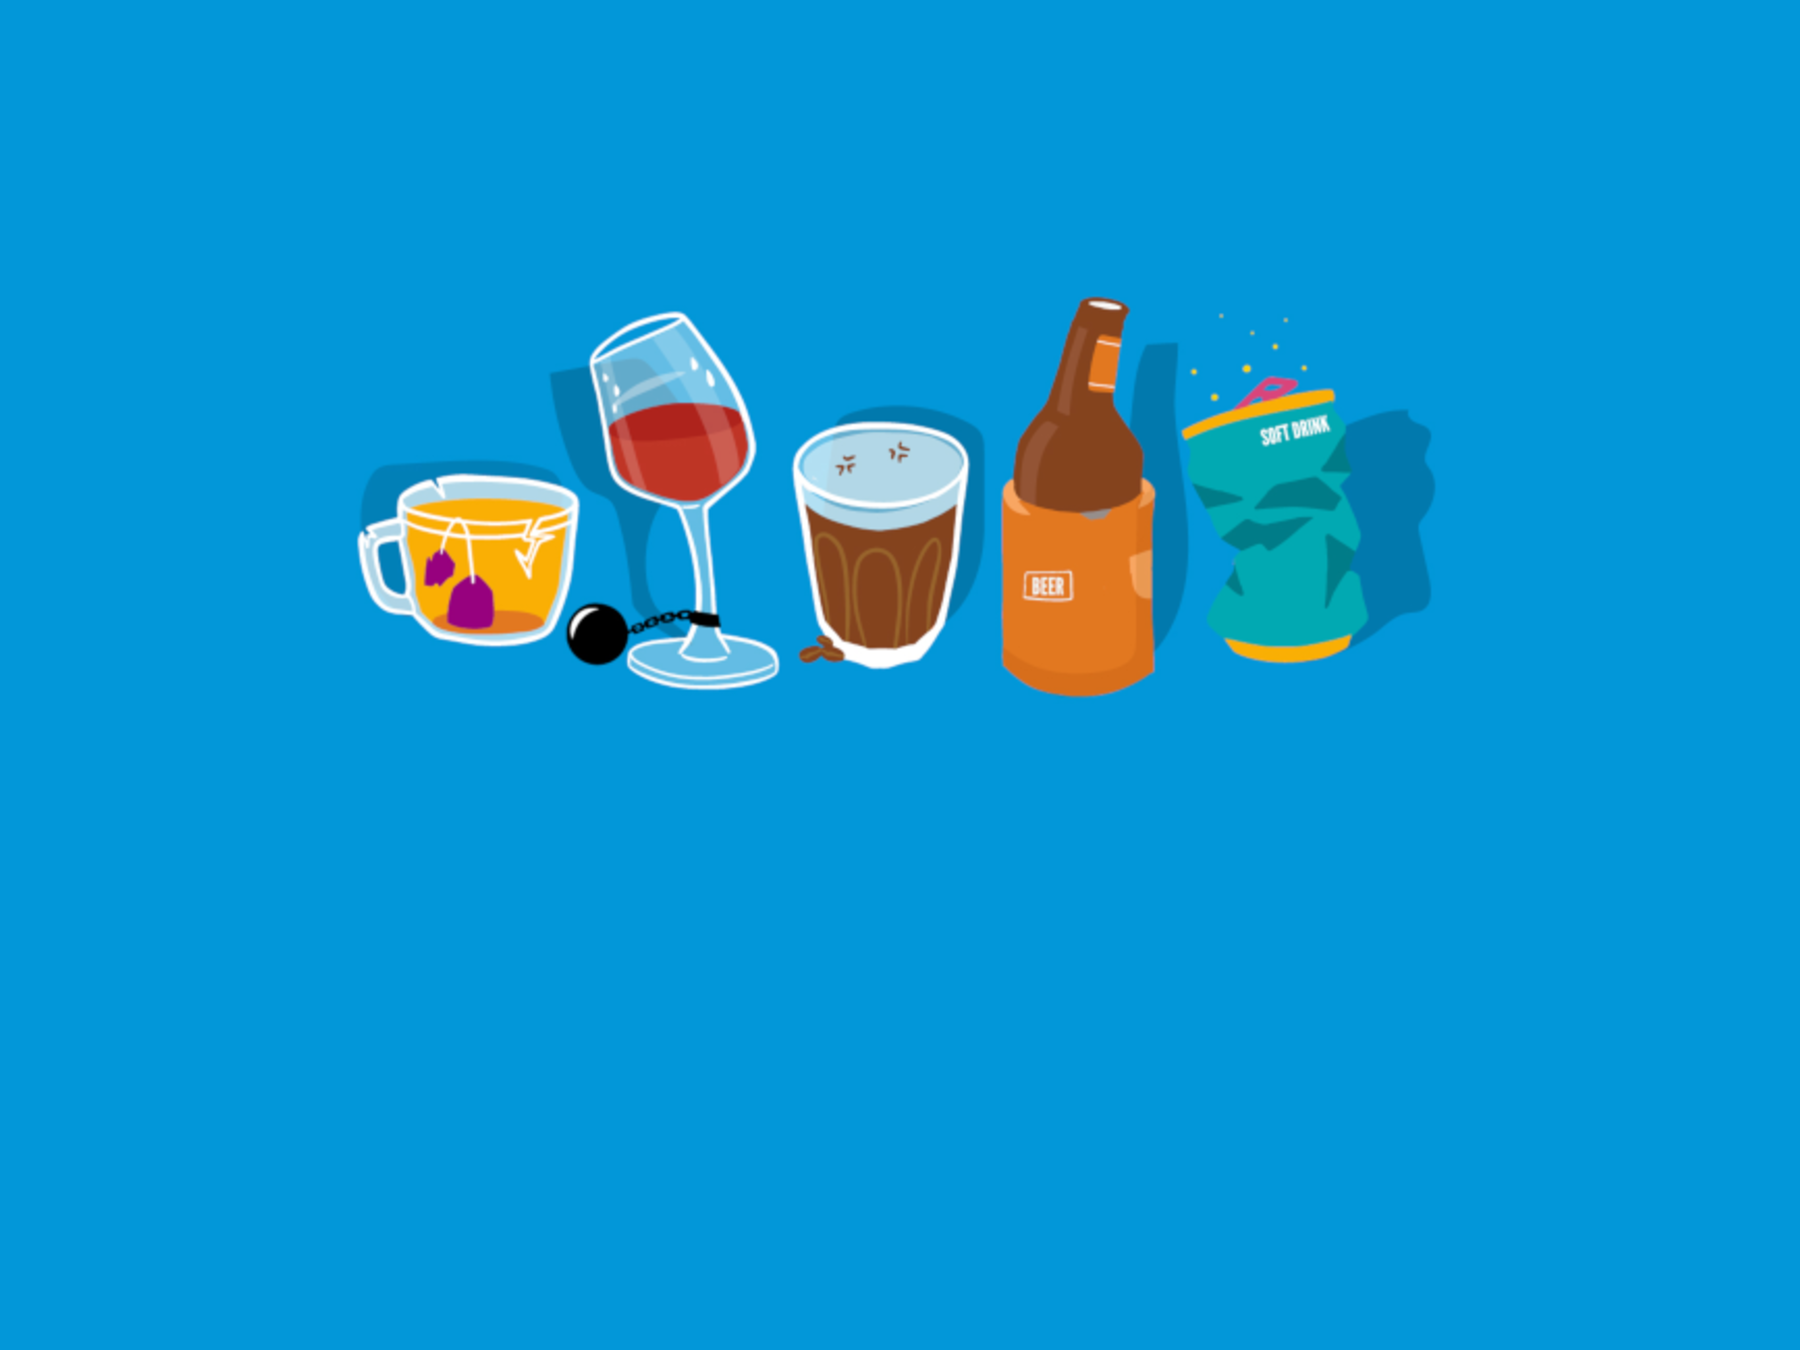 Illustration of various drinks